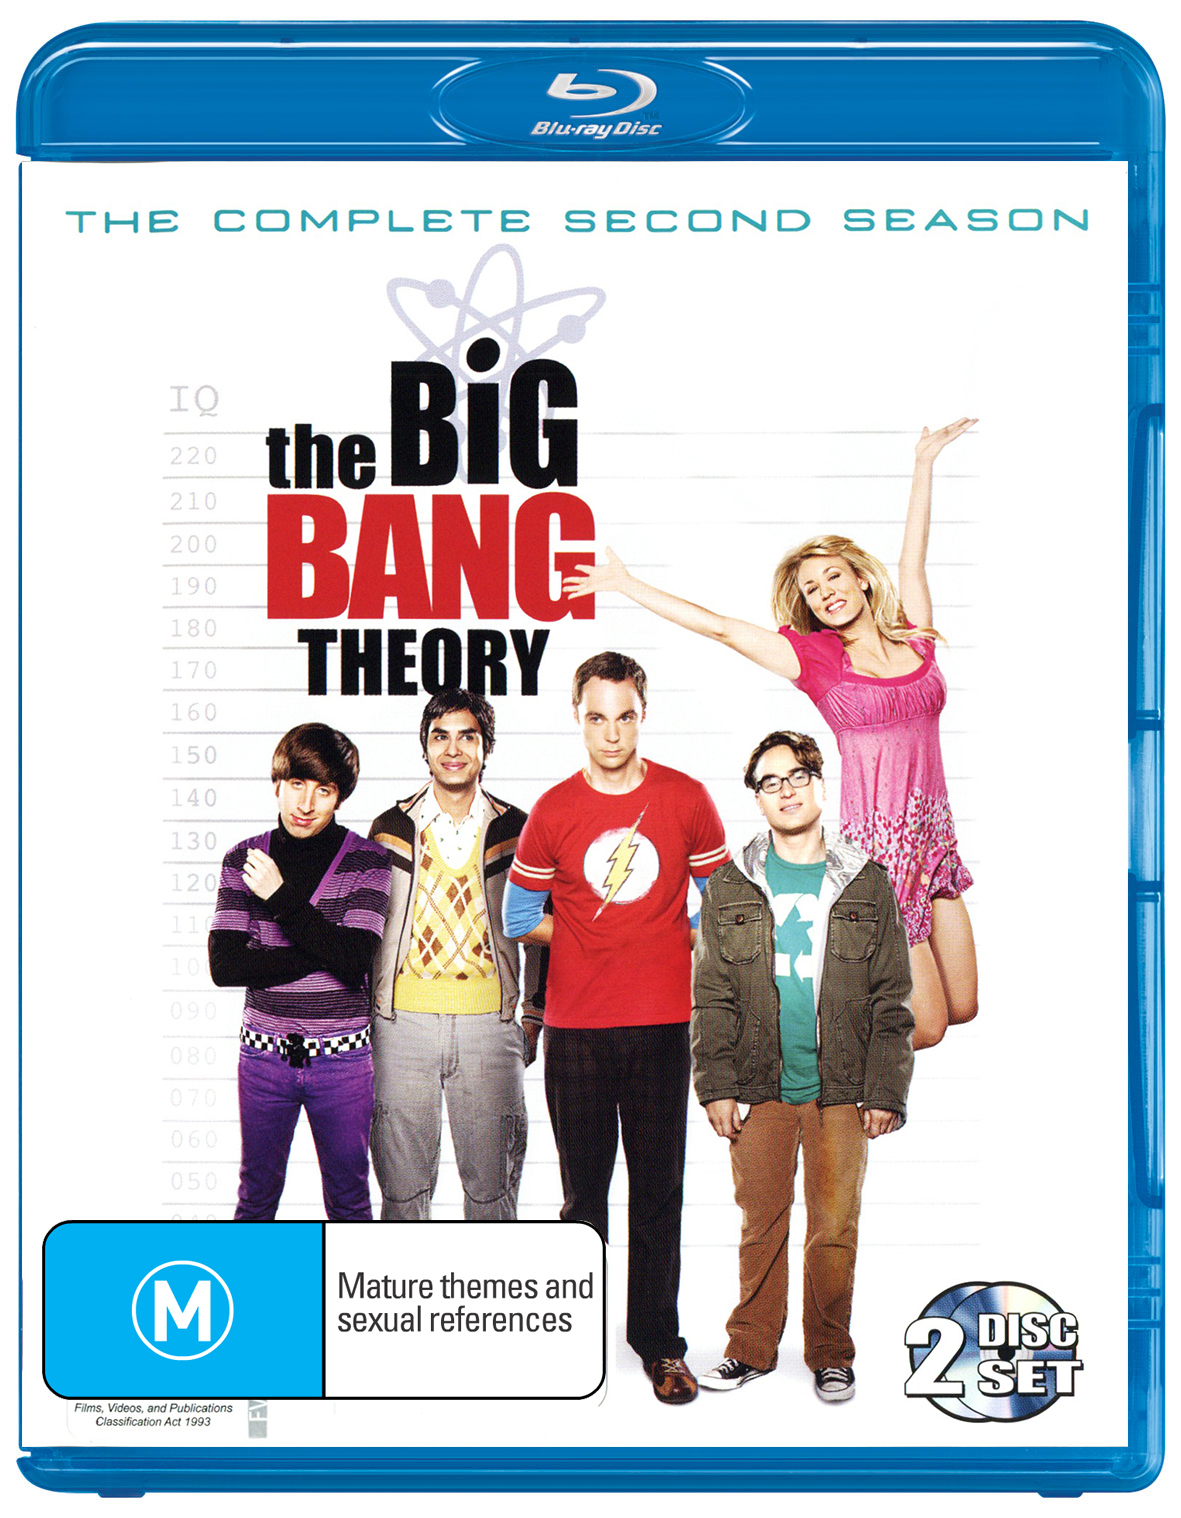 The Big Bang Theory - The Complete Second Season on Blu-ray image